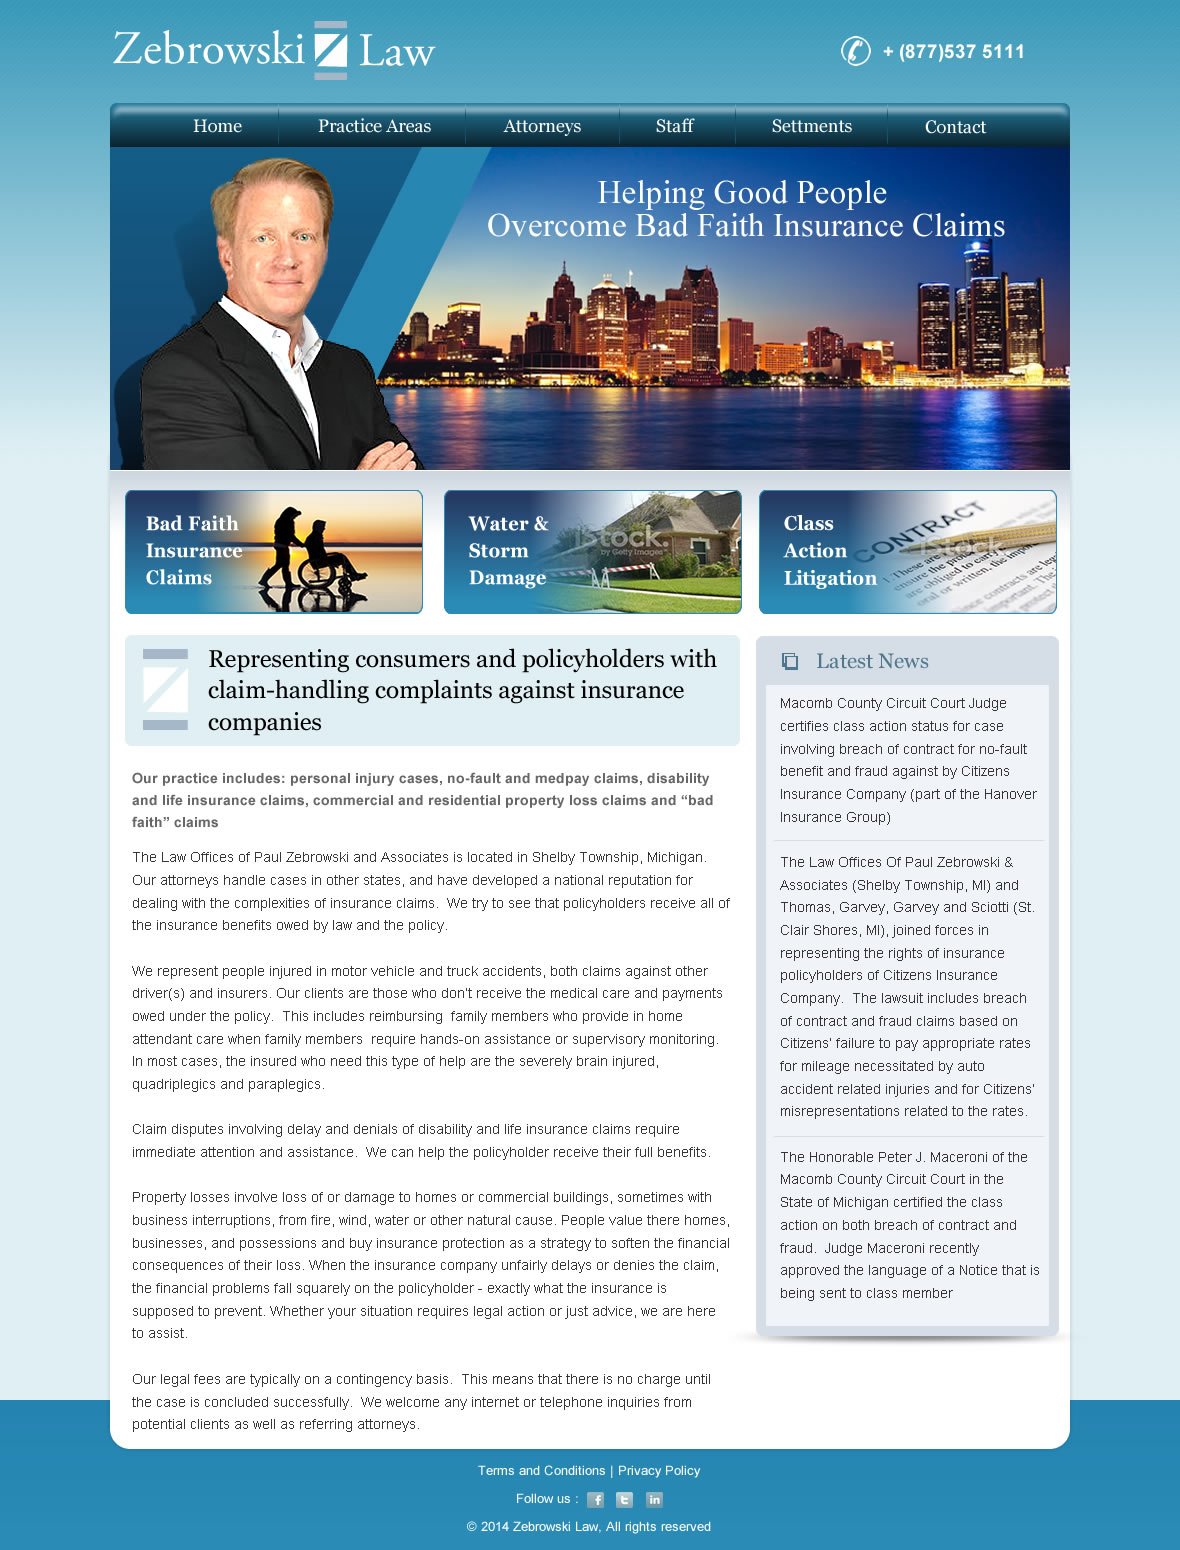 Zebrowski Law Website design - Law